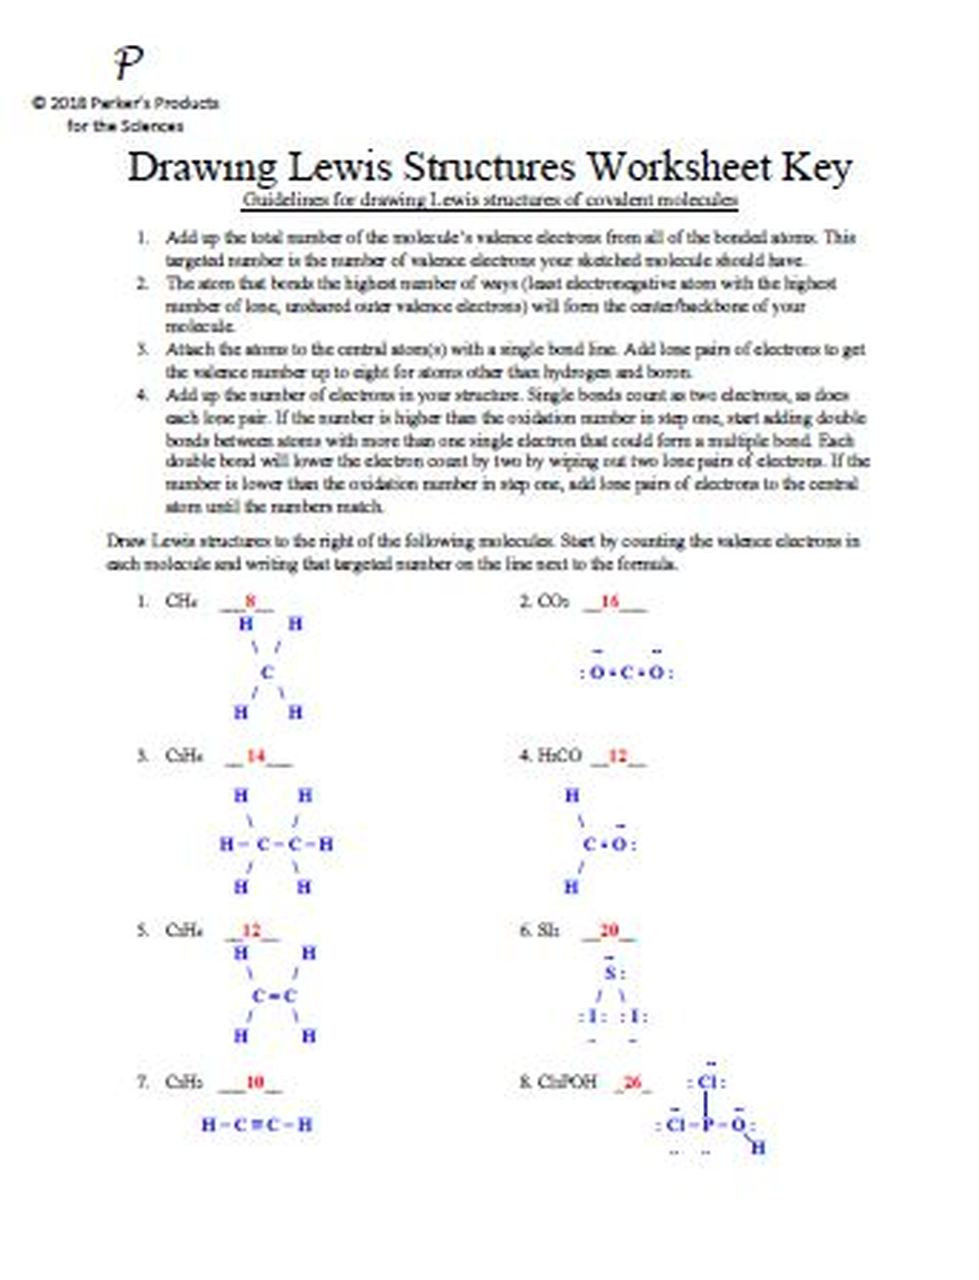 Drawing Lewis Structures Worksheet Drawing Lewis Structures Worksheet